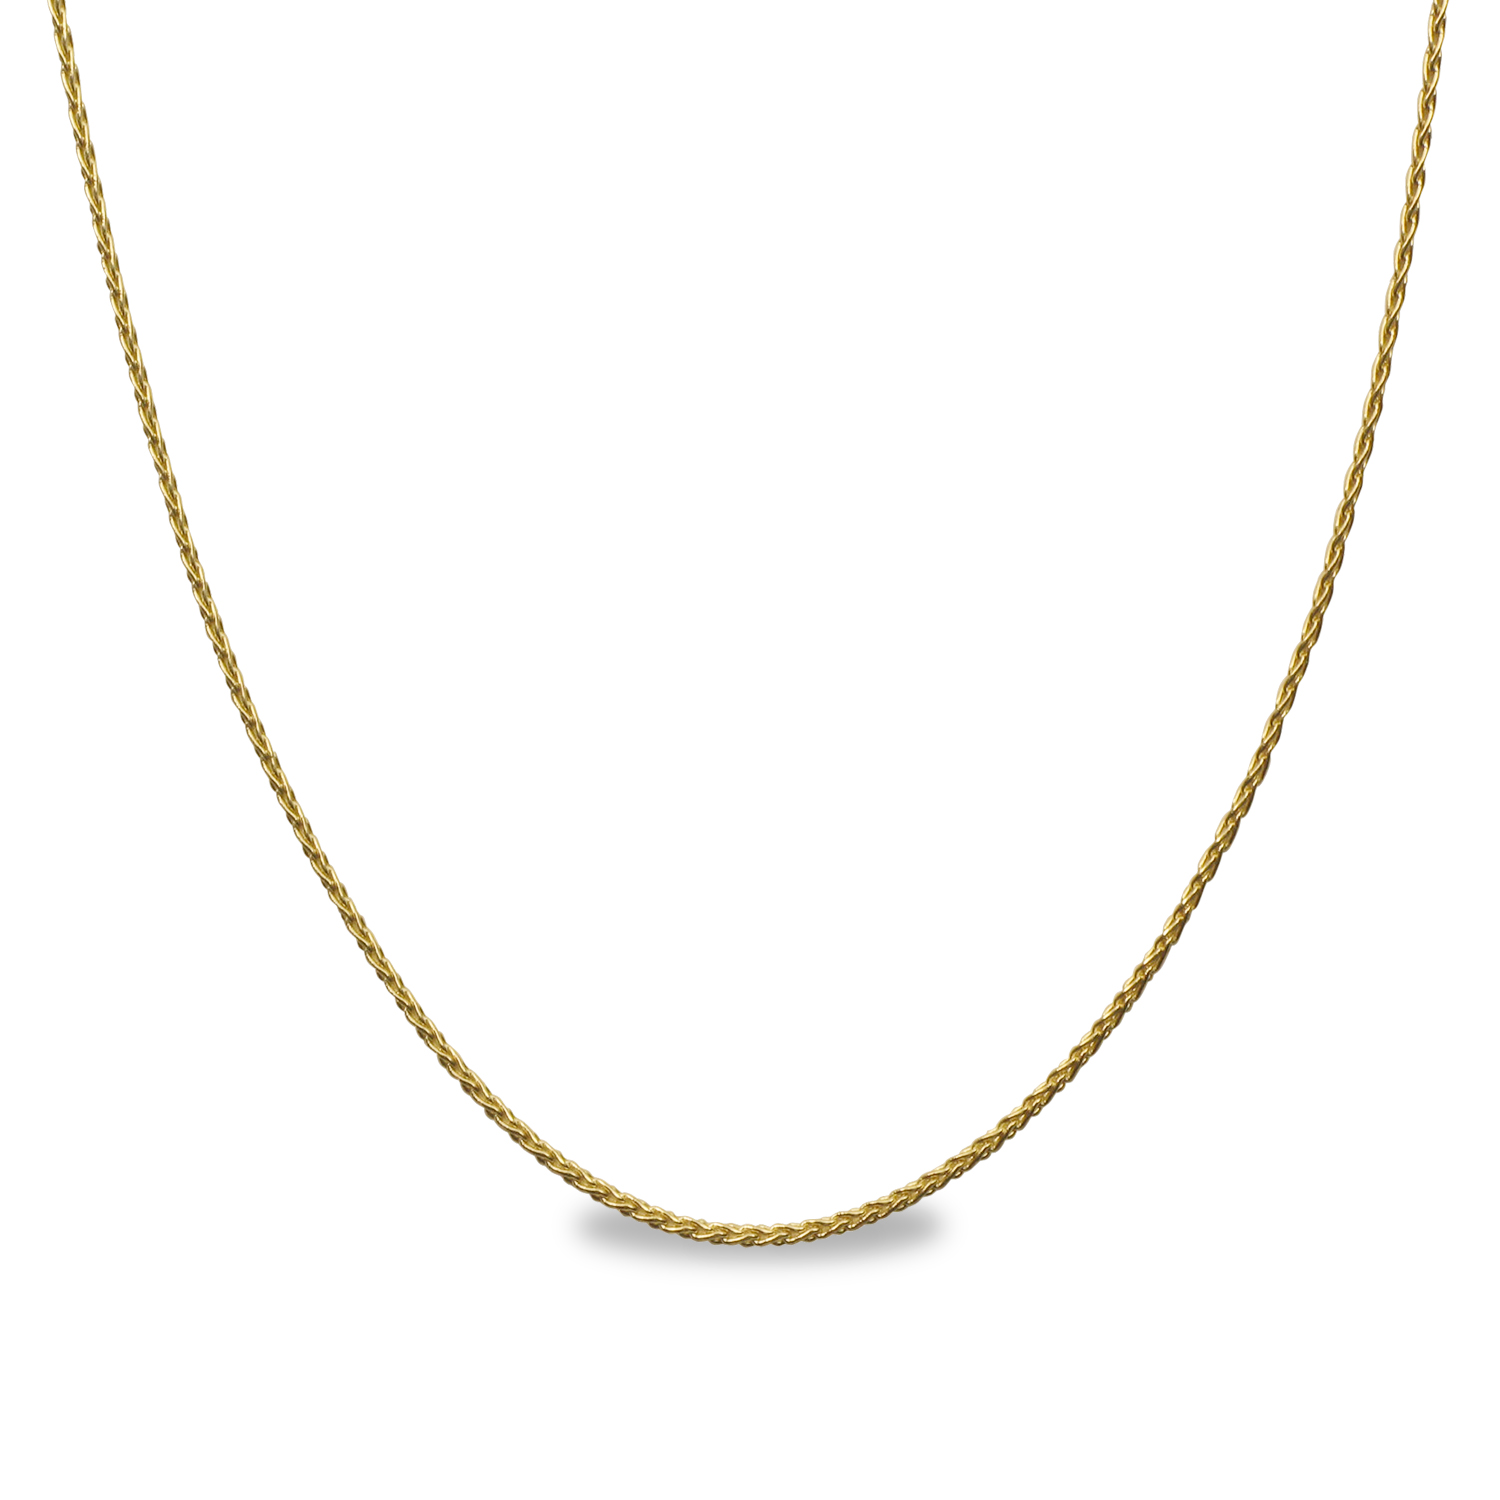 Round Wheat 14k Gold Necklace - 18 in.